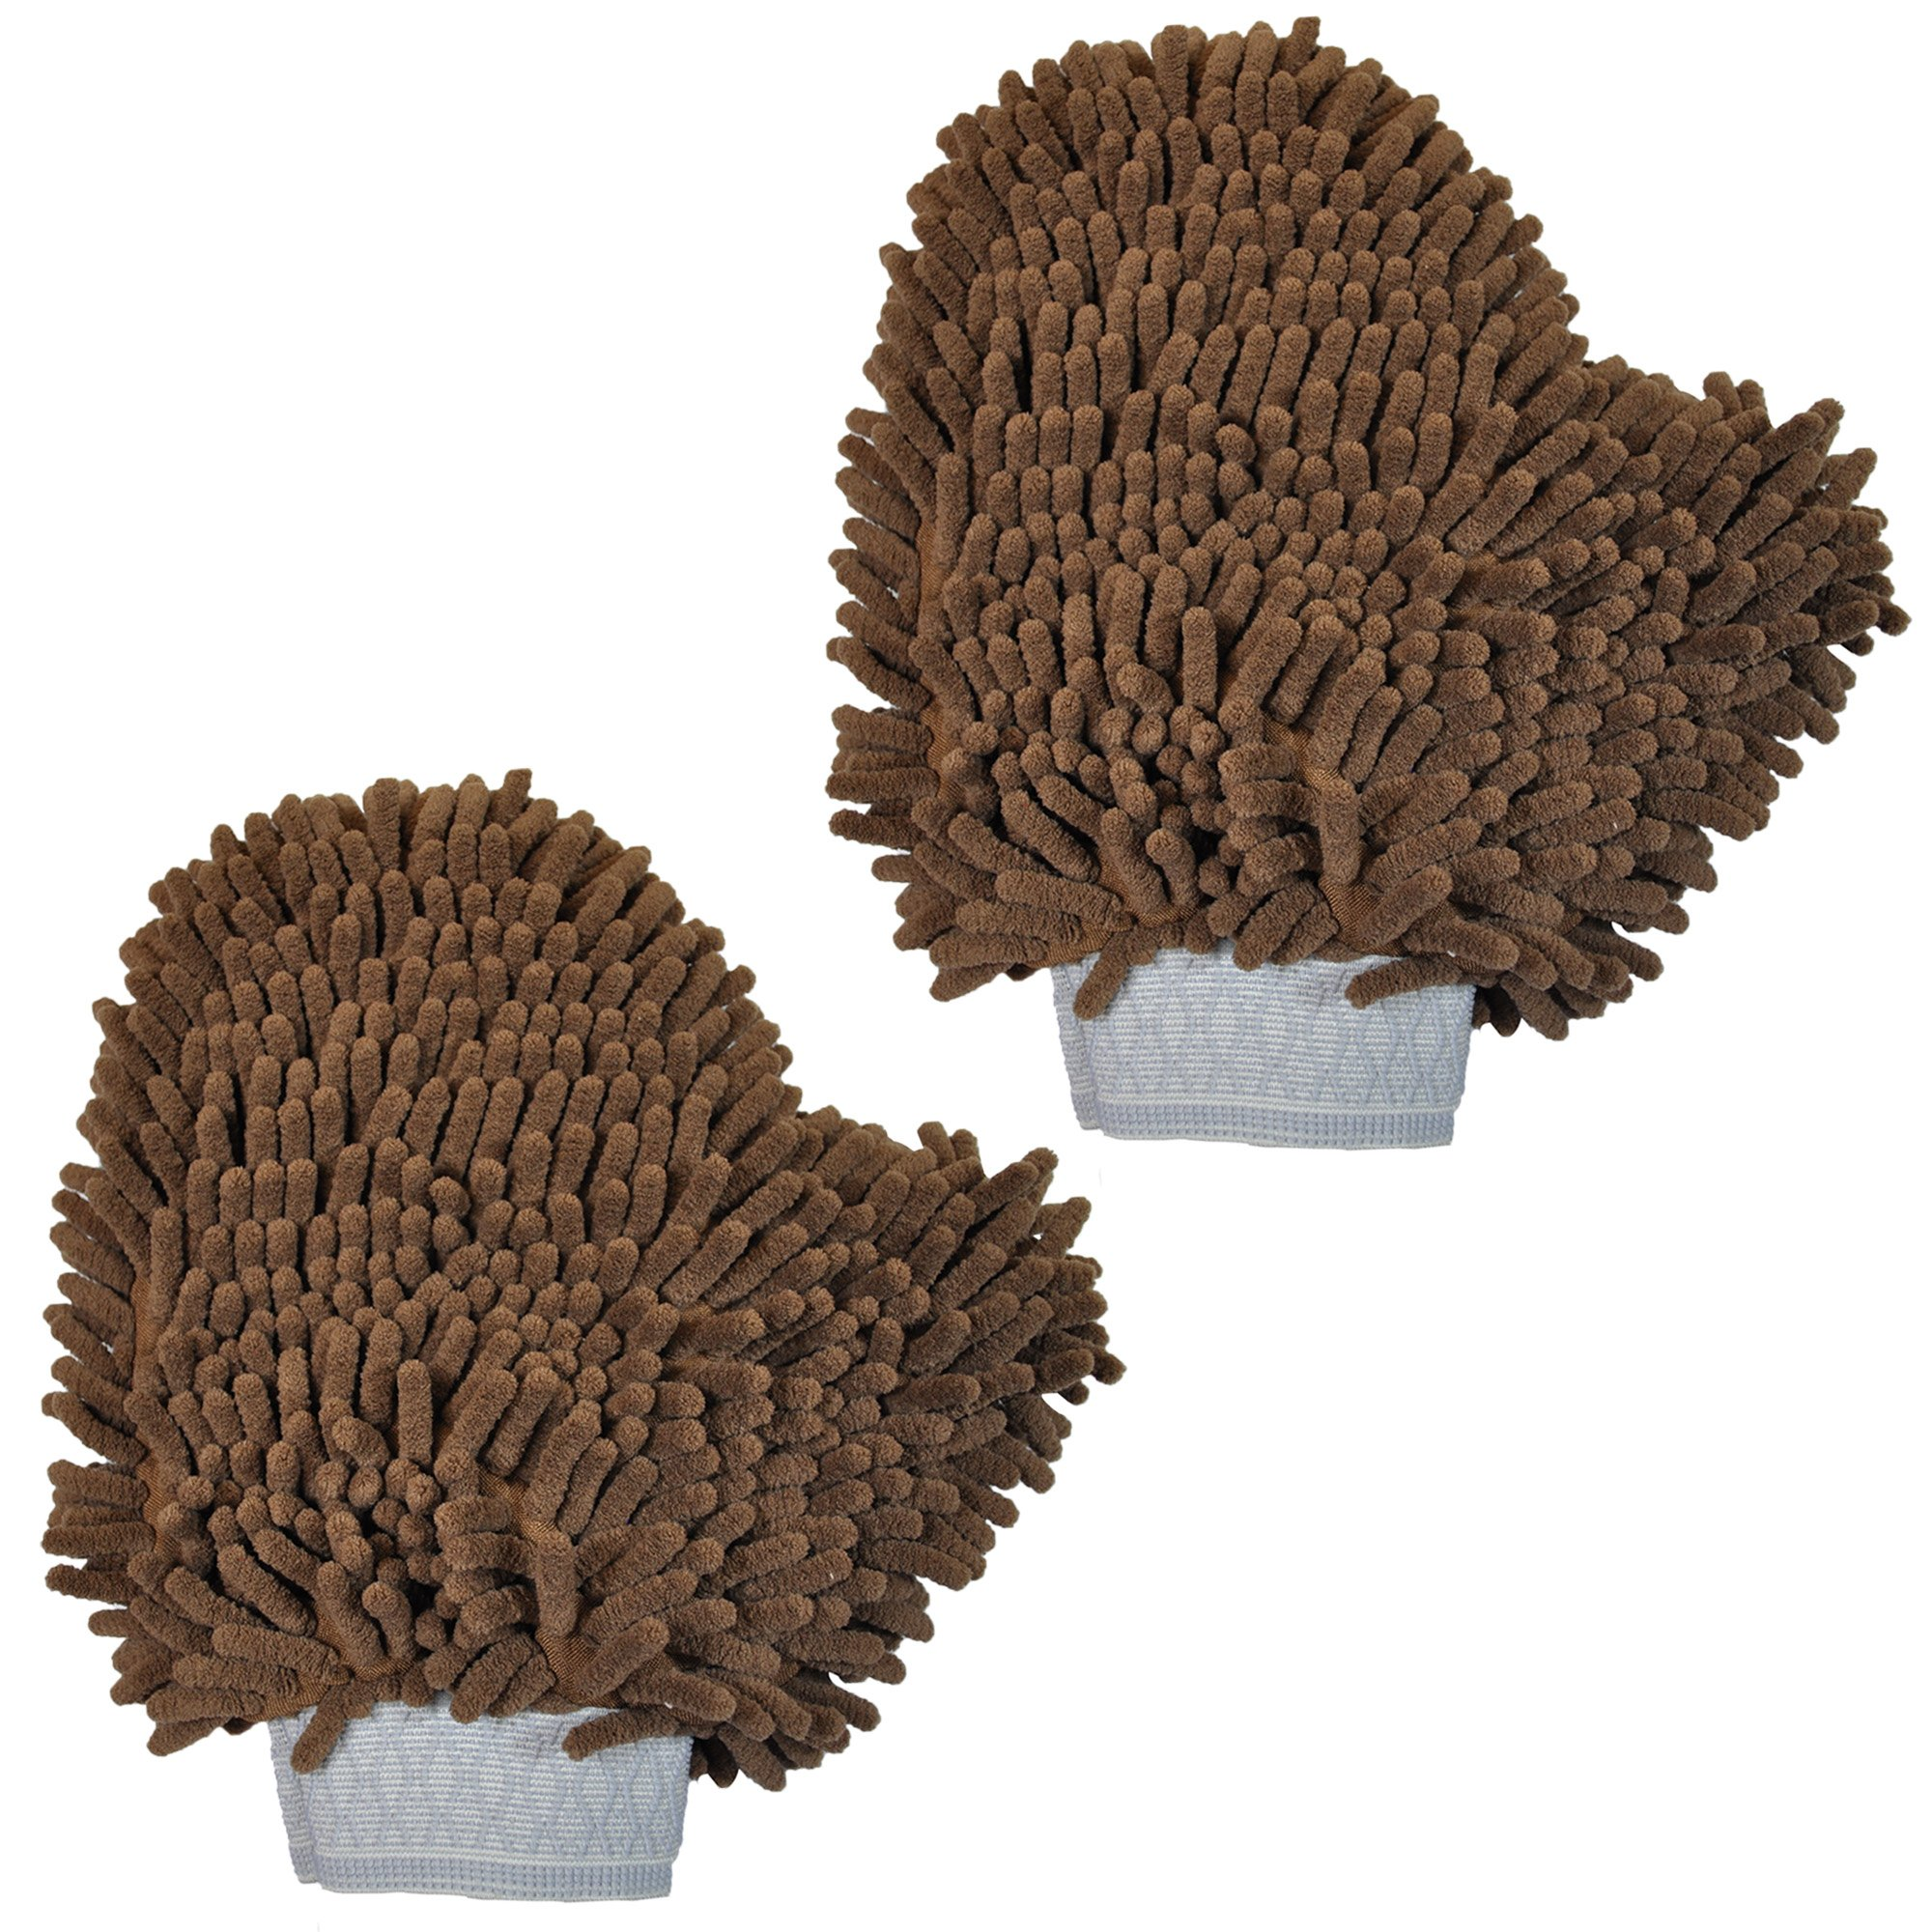 Versatile Microfiber Car Wash Mitt or Dog Bath Glove - Ultra Absorbent and Lint Free